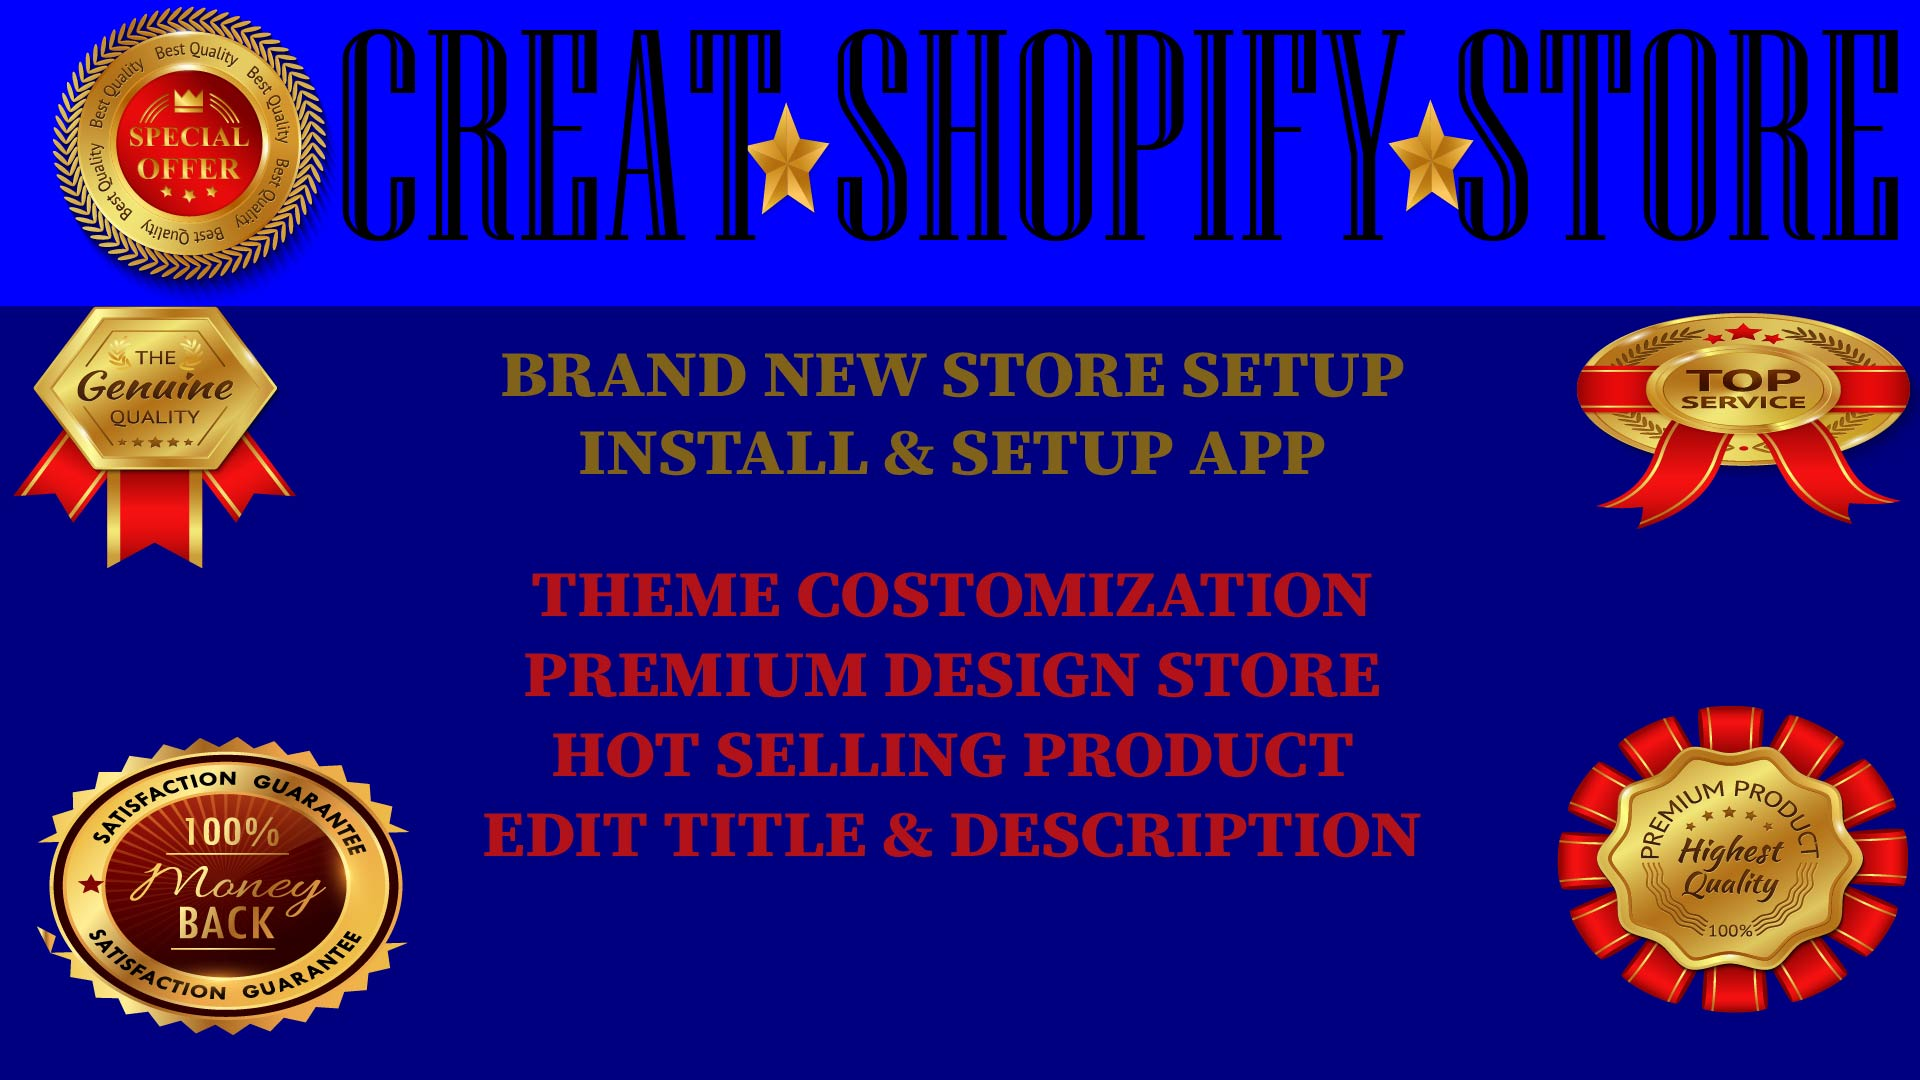 I will create shopify dropshipping store